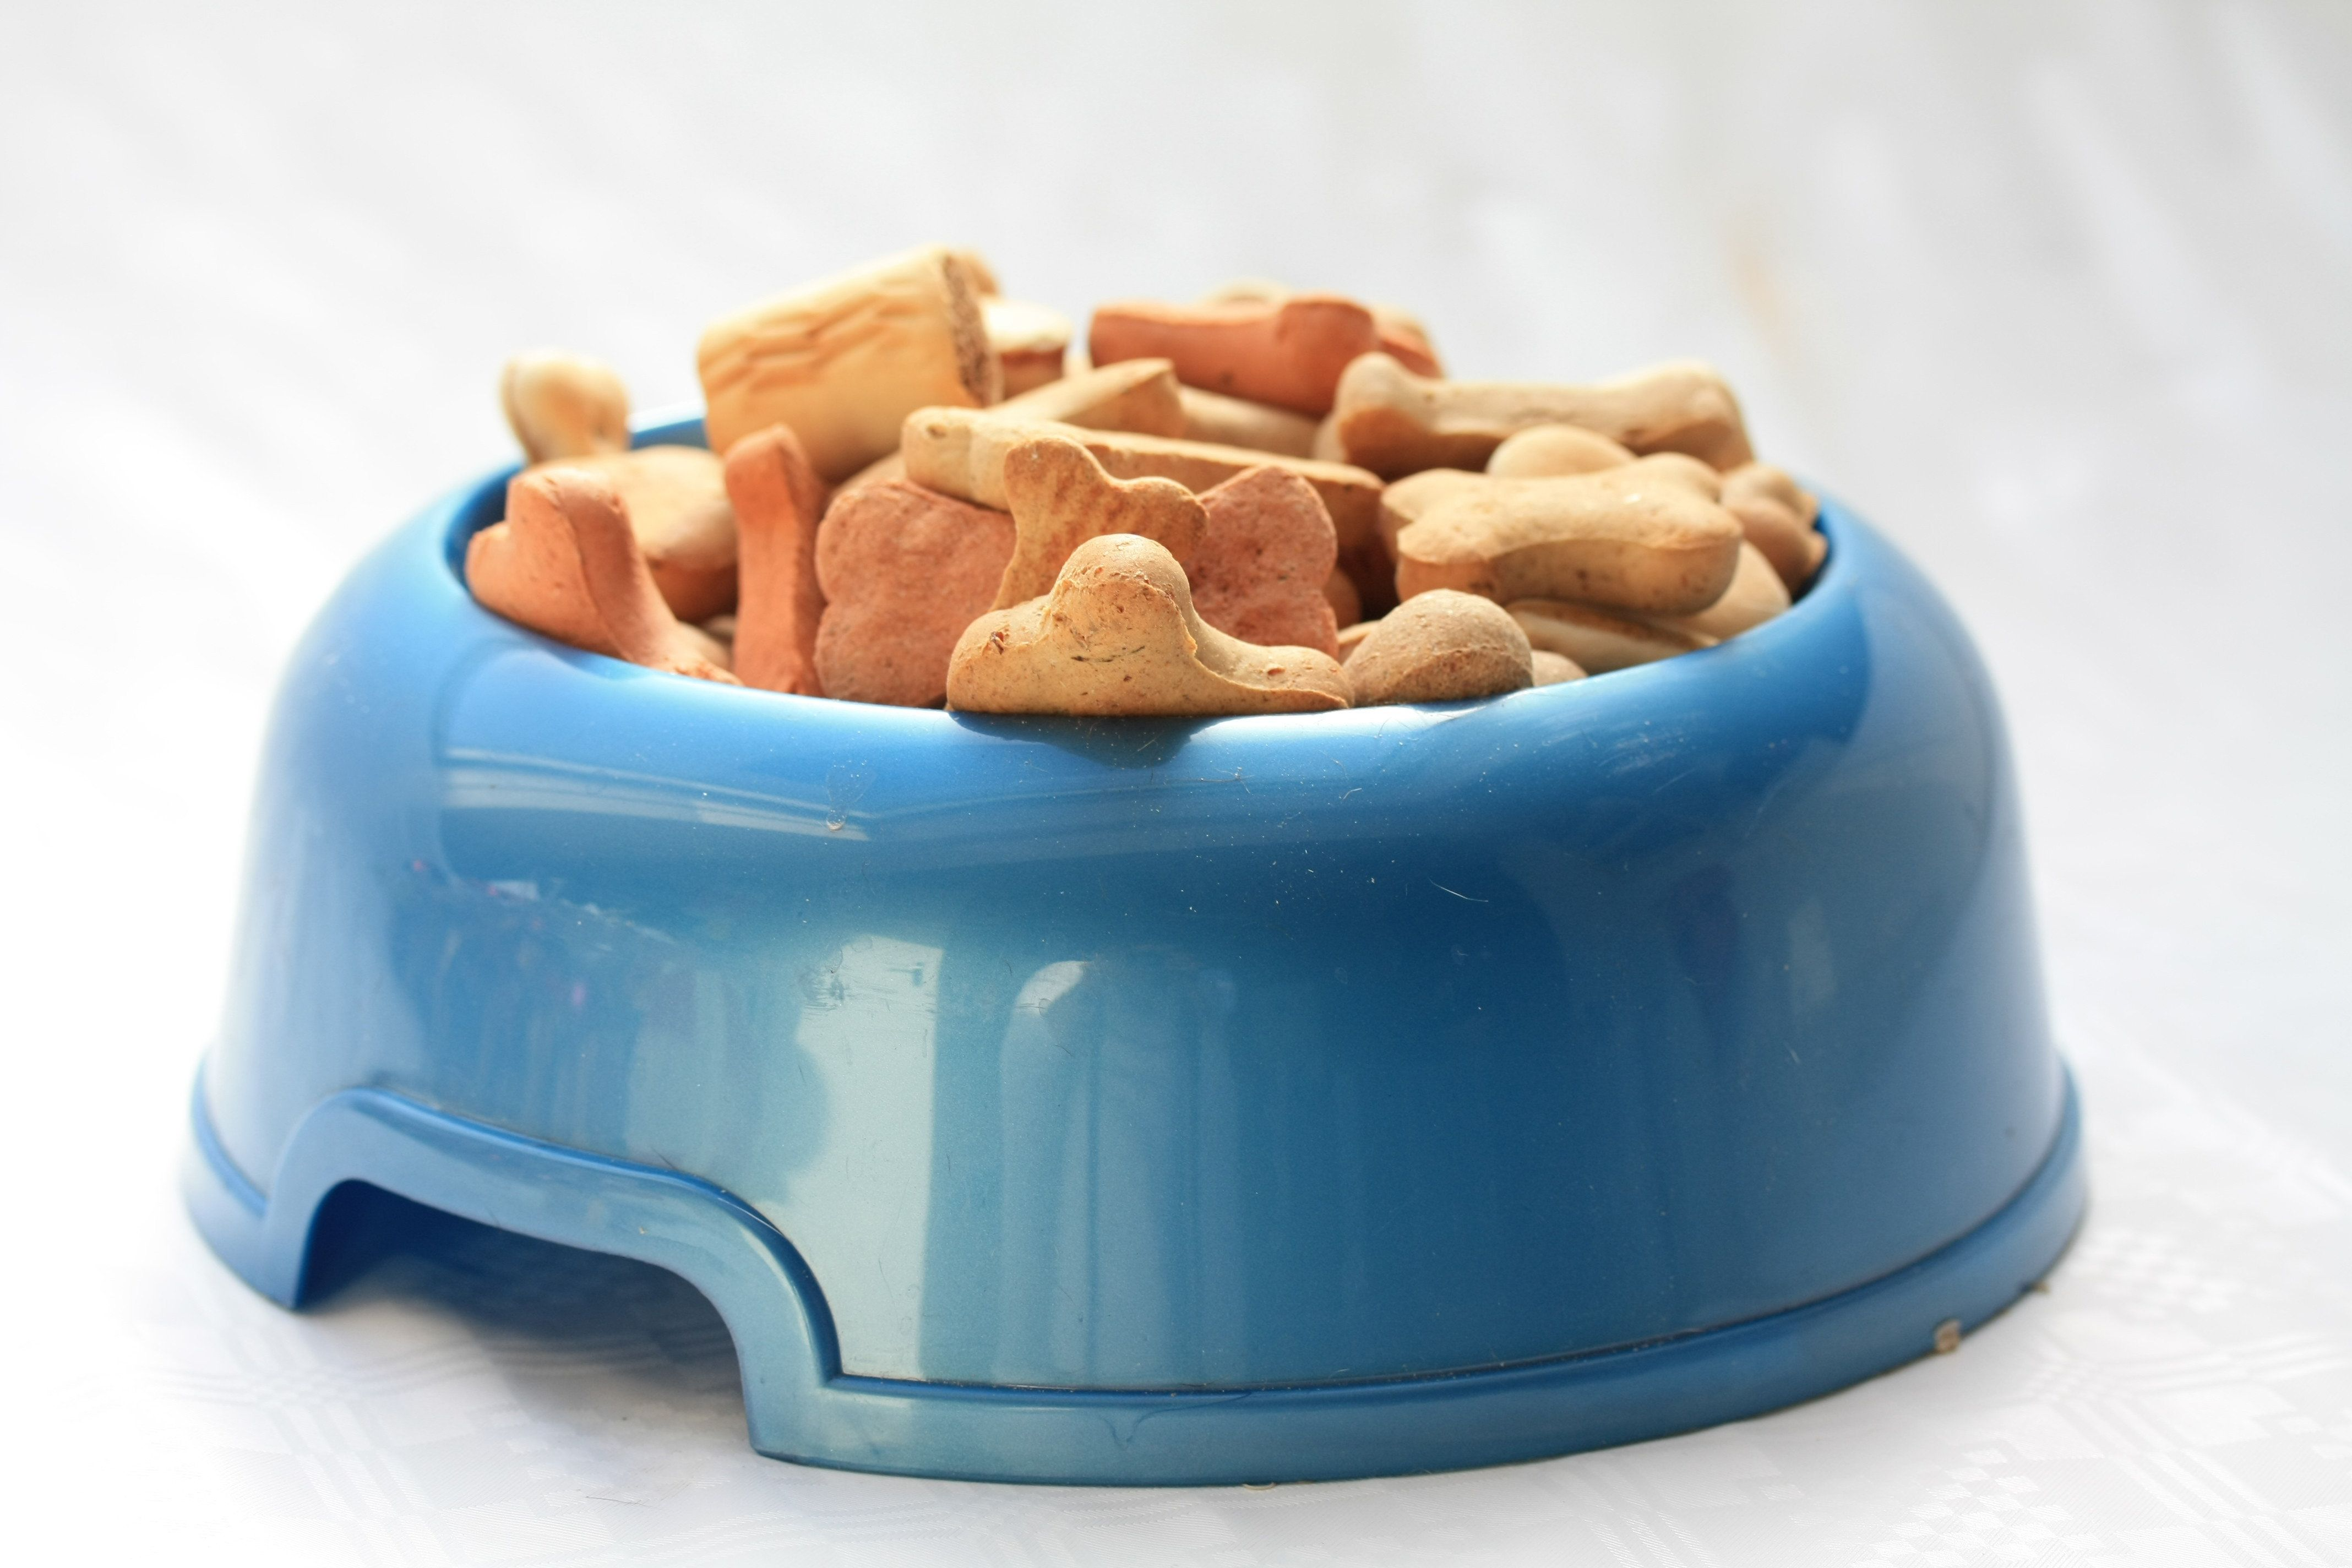 Blue bowl with dog cookies in different colors, shapes and maybe tastes too...